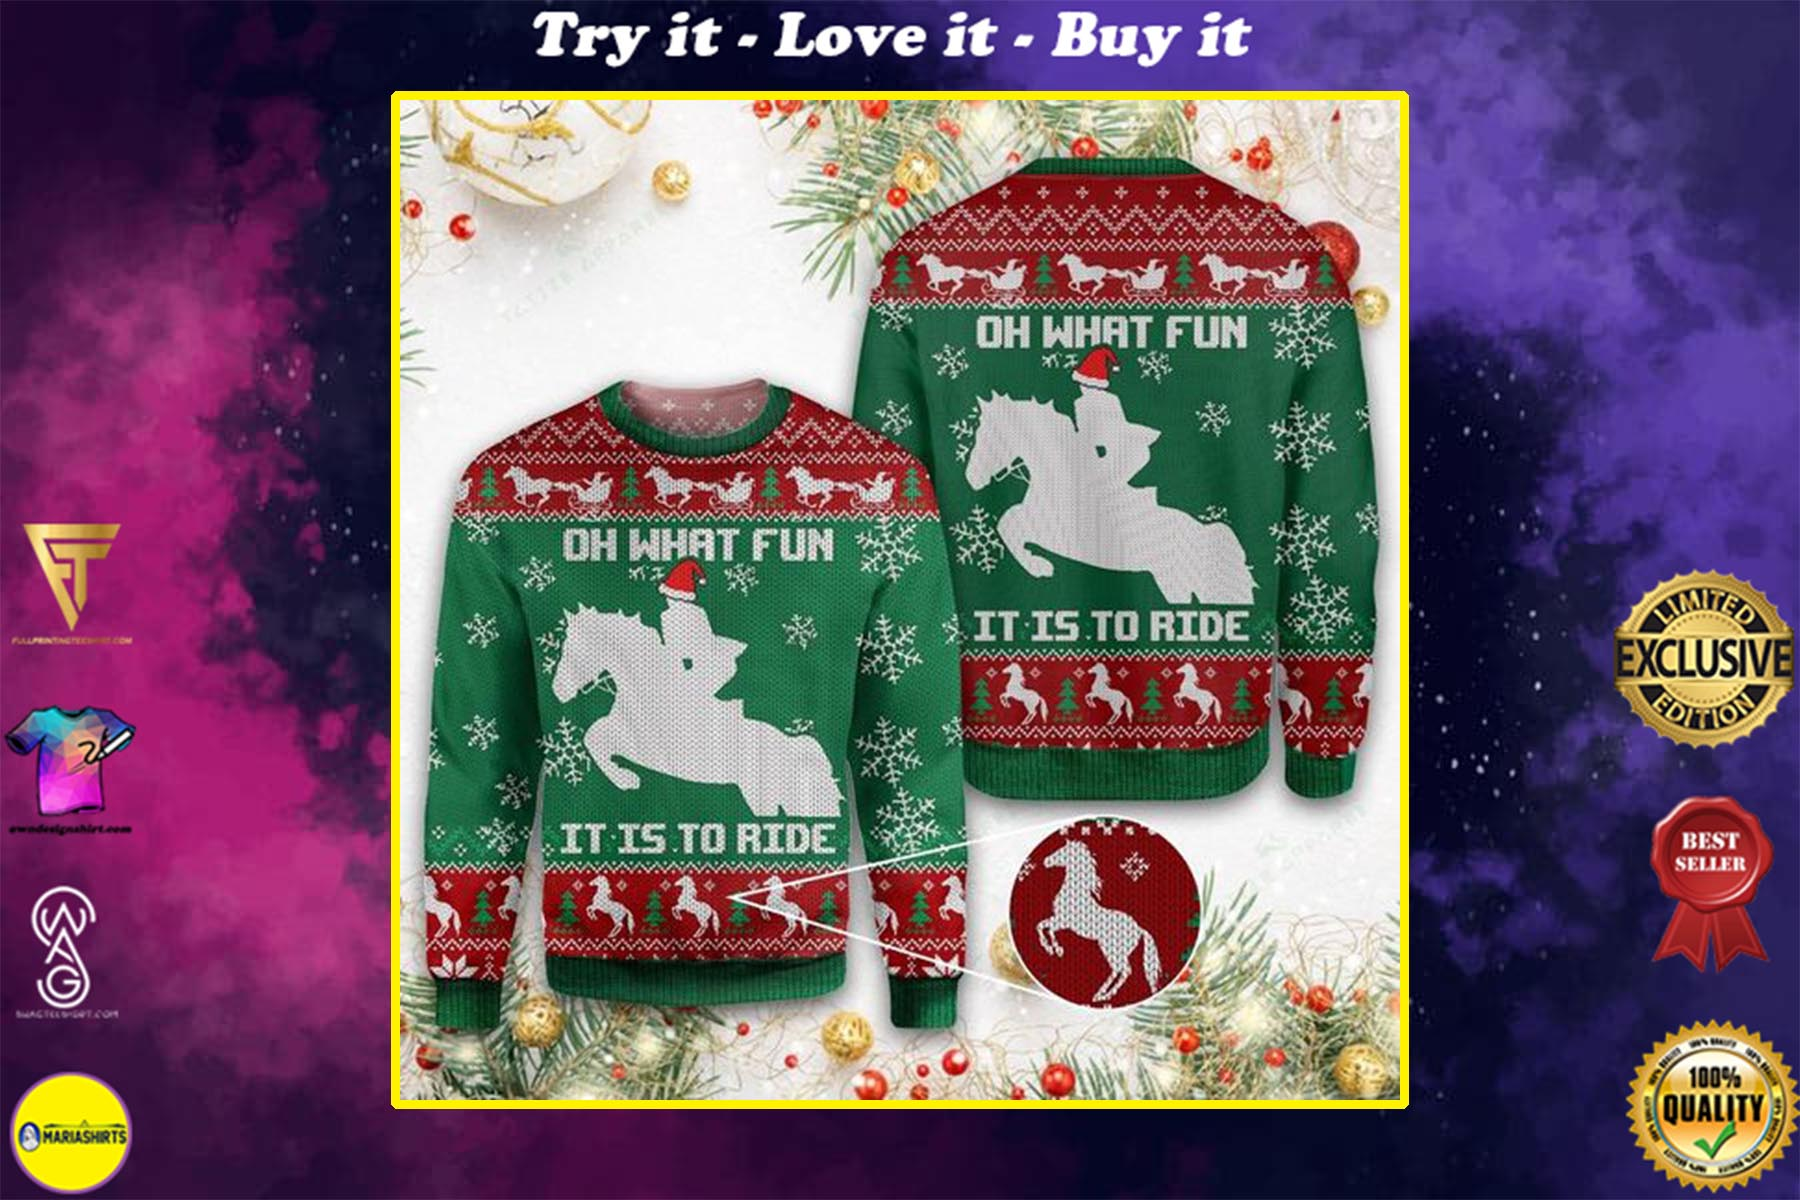 [special edition] christmas horse oh what fun it is to ride all over printed ugly christmas sweater - maria